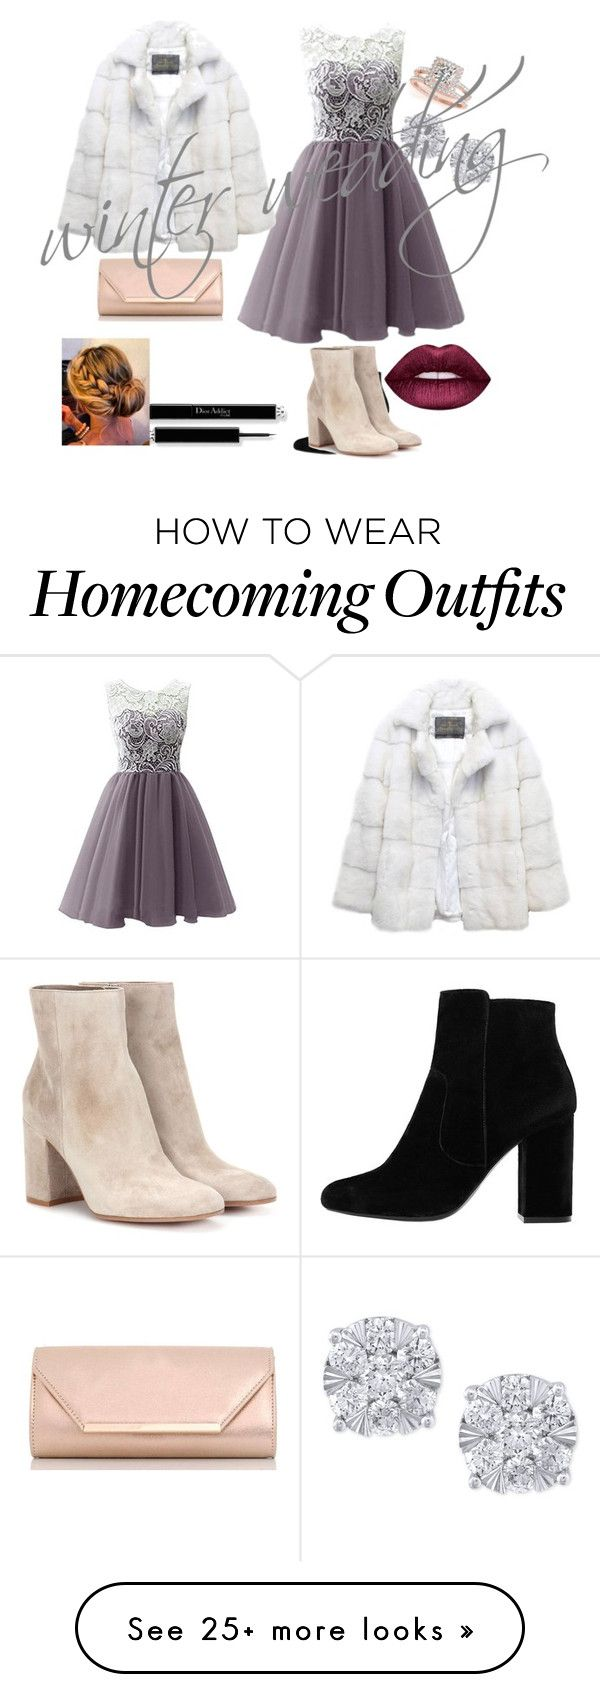 """#winterwedding"" by dixielou321 on Polyvore featuring Lilly e Violetta, MANGO, Gianvito Rossi, Dorothy Perkins, Allurez, Effy Jewelry and Lime Crime"